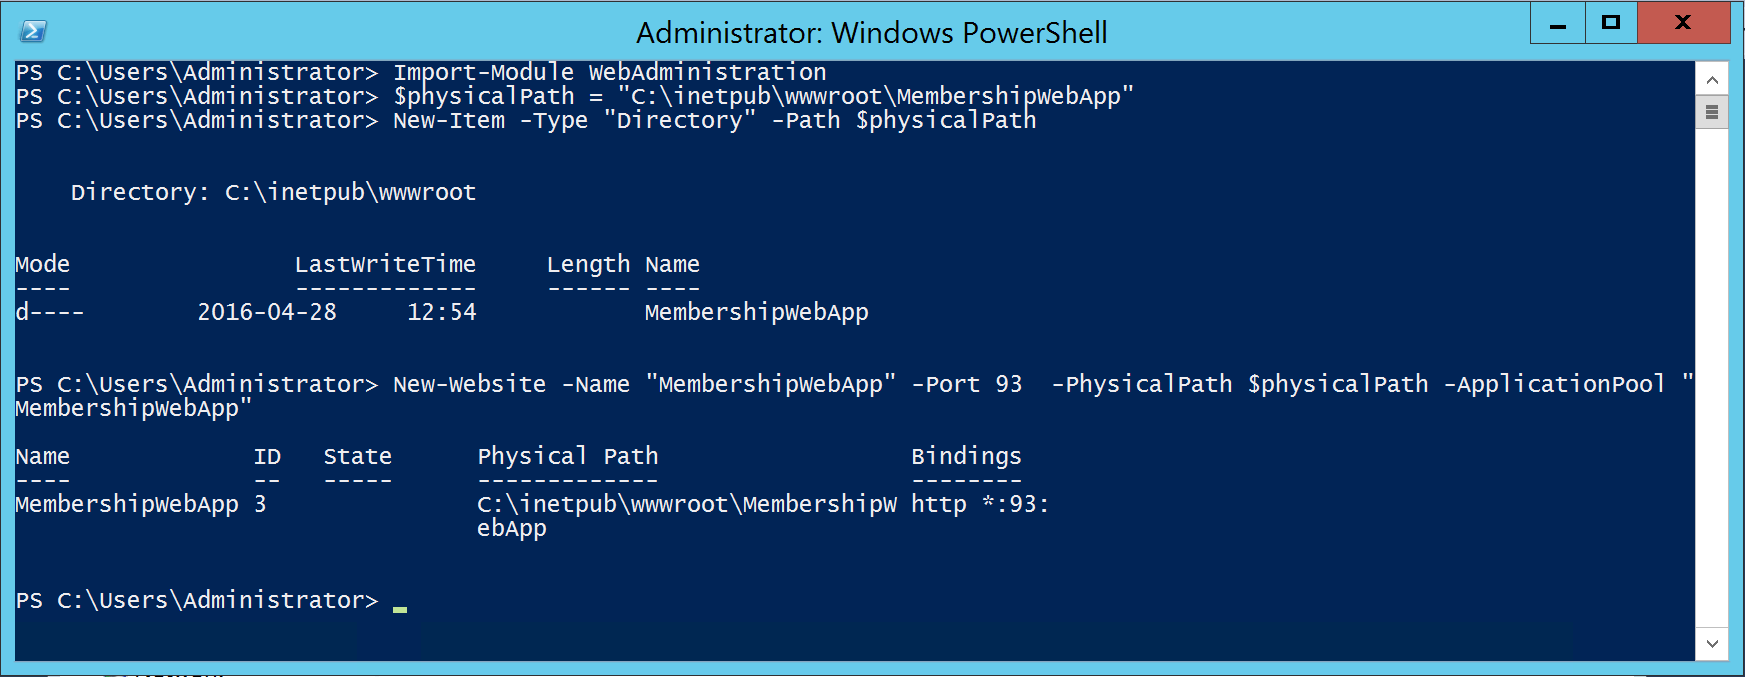 SharePoint Form-Based Authentication with SQL using PowerShell